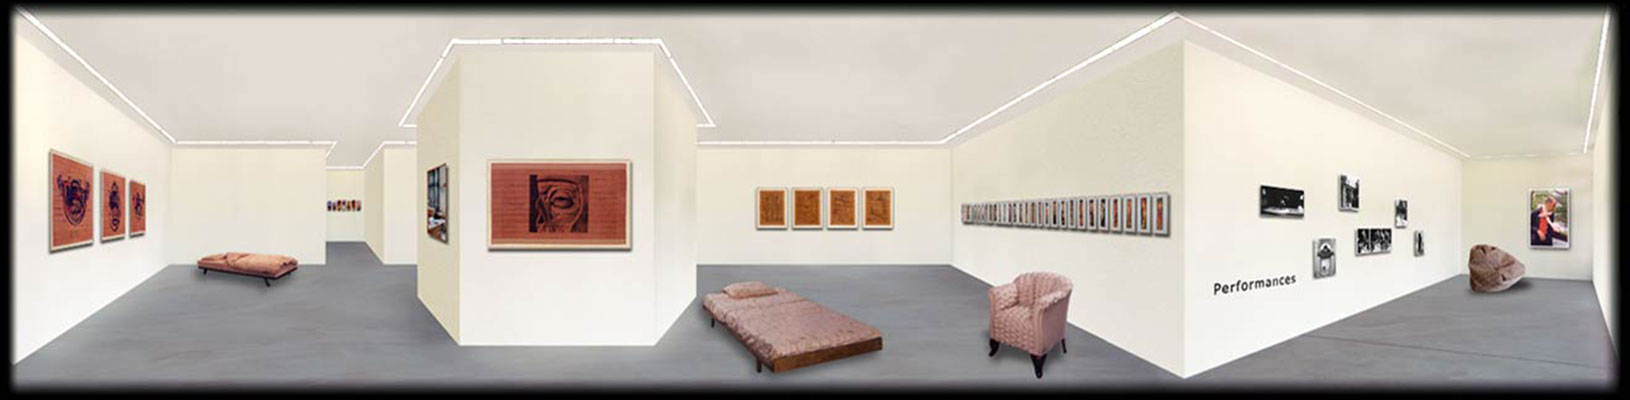 Before, © 1997 and before, A collection of works produced before 1997, shown as a virtuell exhibition